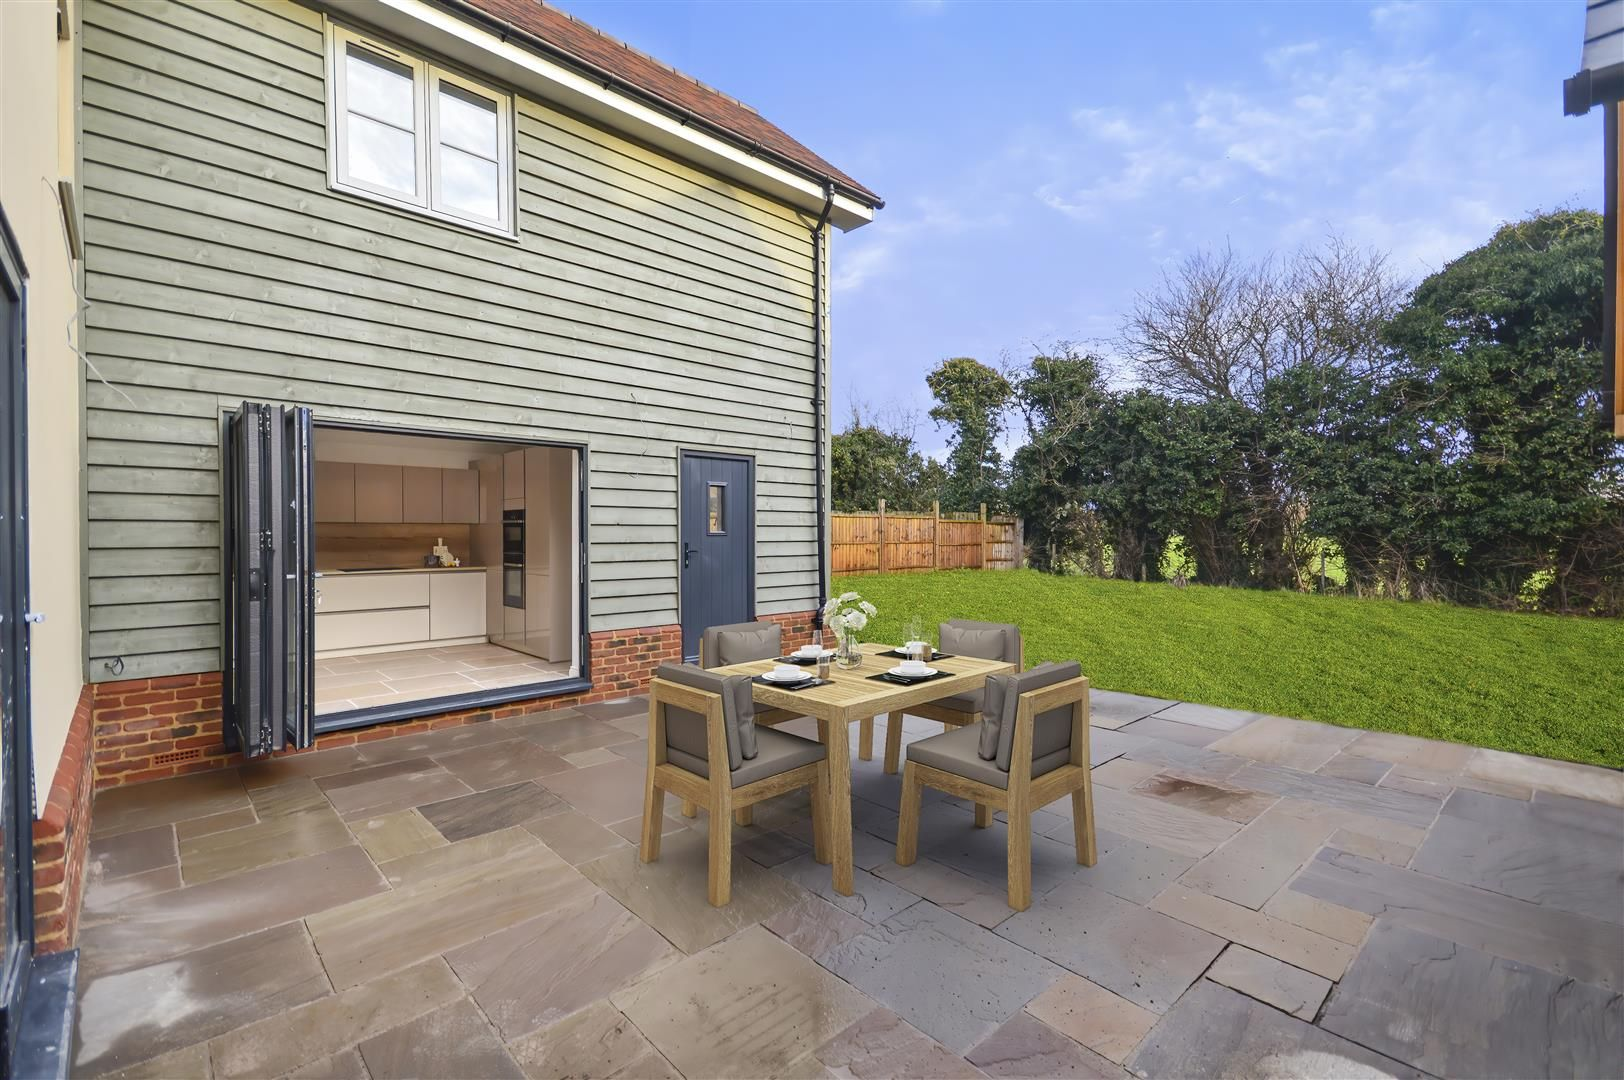 3 bed detached for sale in Marden 2